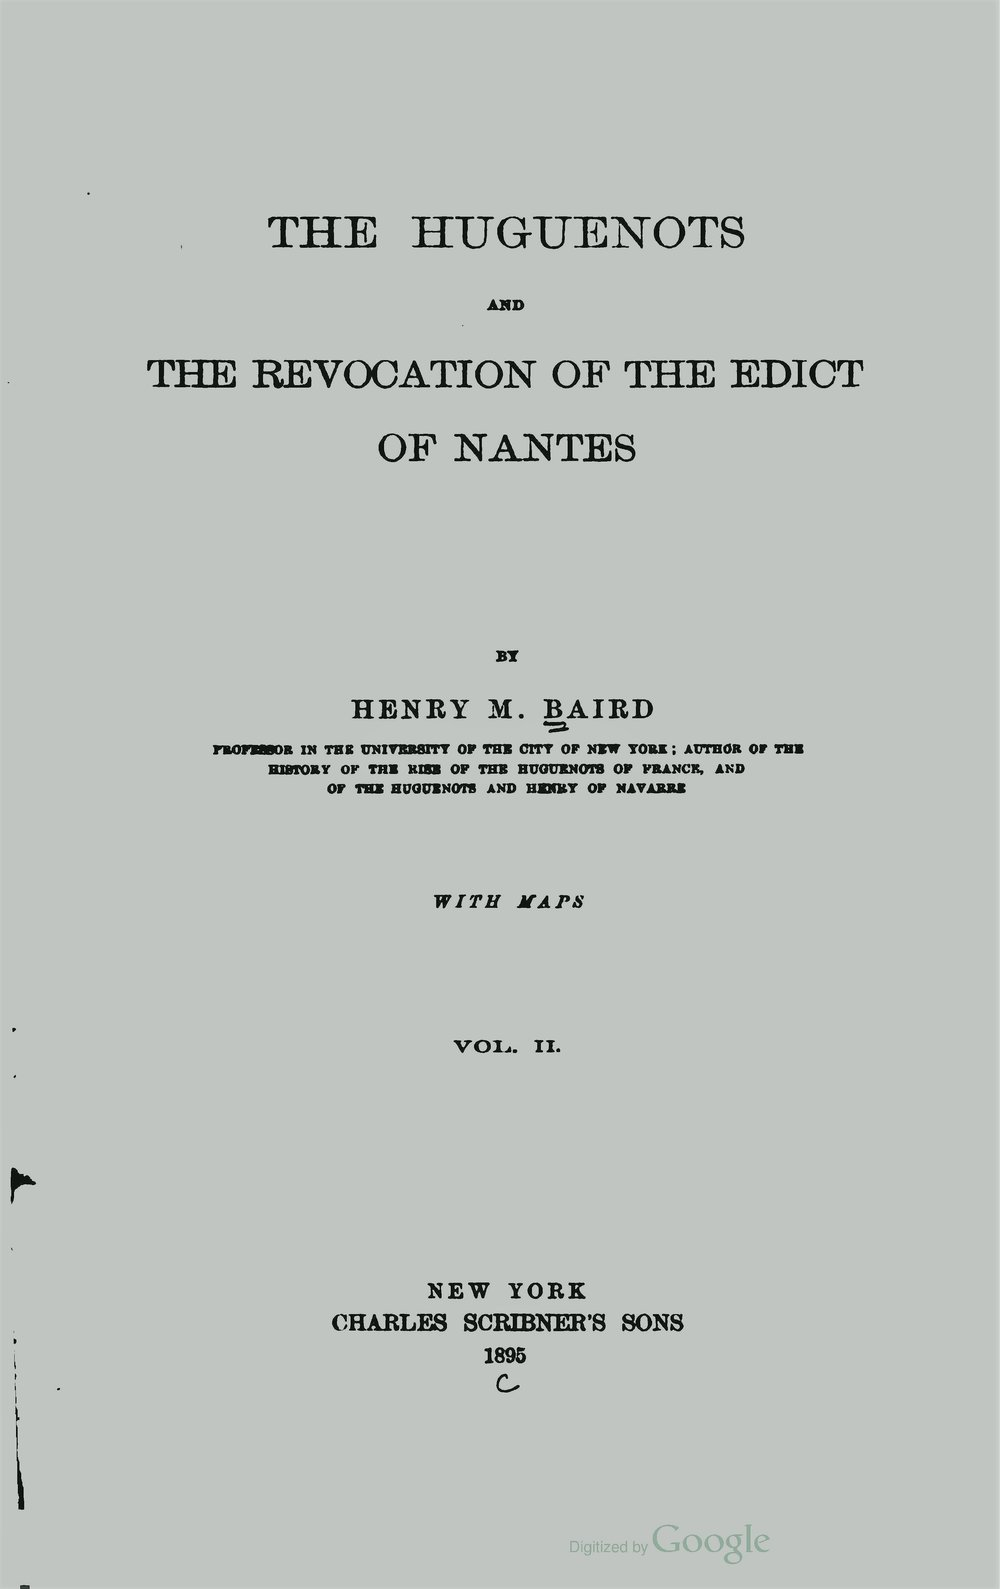 Baird, Henry Martyn, The Huguenots and the Revocation of the Edict of Nantes, Vol. 2 Title Page.jpg